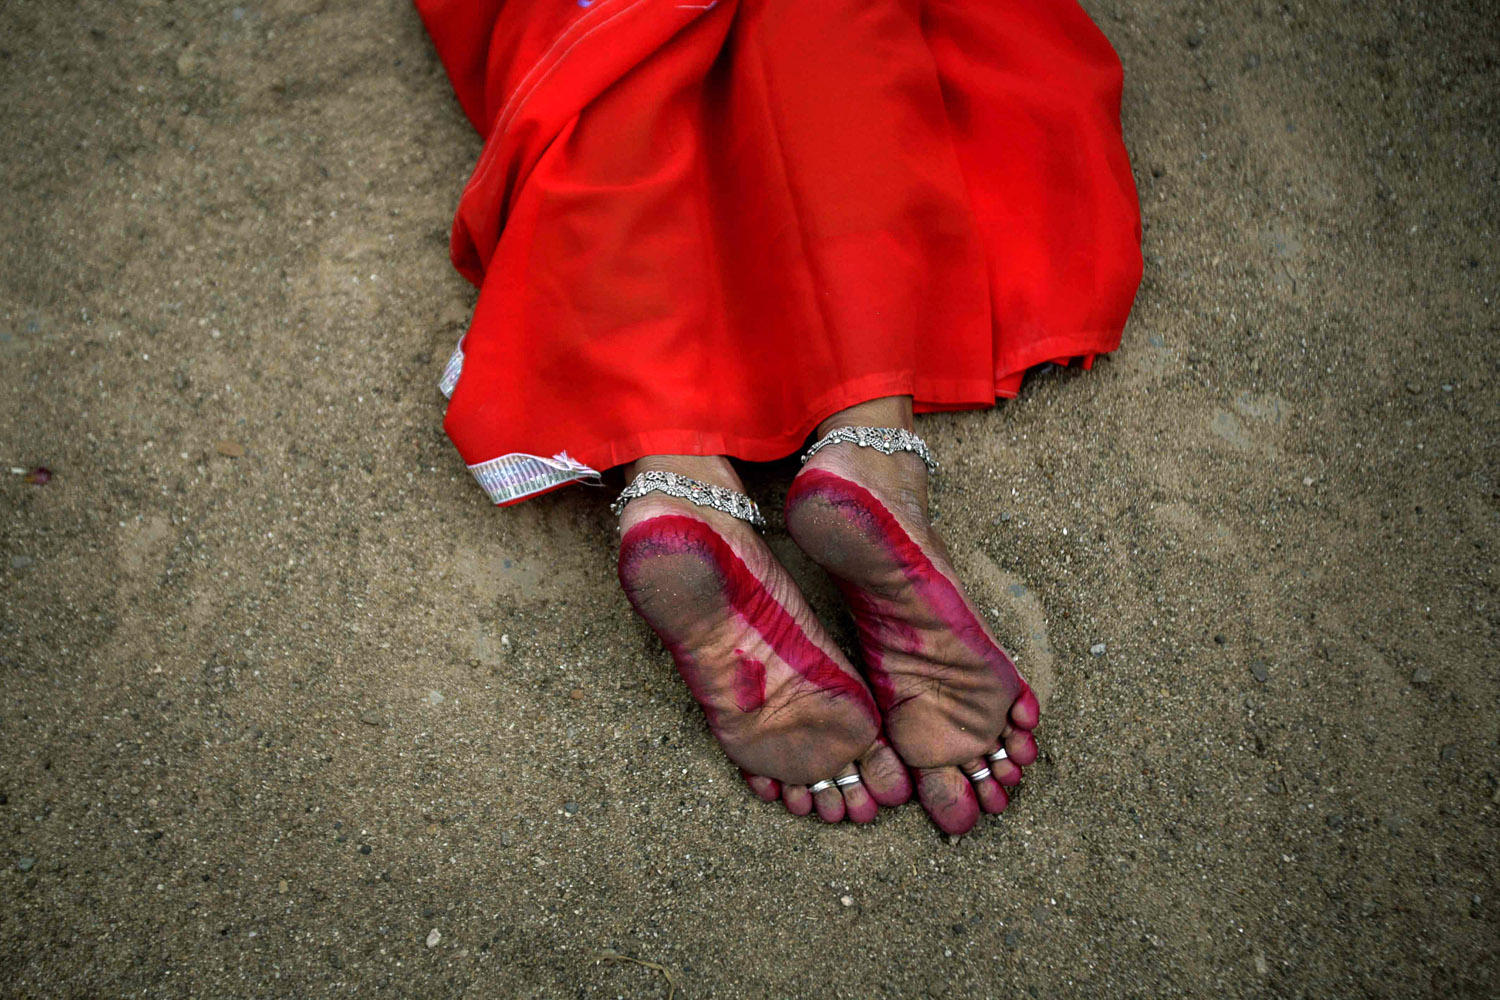 April 2, 2013. A devotee lies on hot sand as a form of penance on the first day of the Danda festival at Kulagarh, in Ganjam district, about 200 kilometers (125 miles) from Bhubaneswar, India.